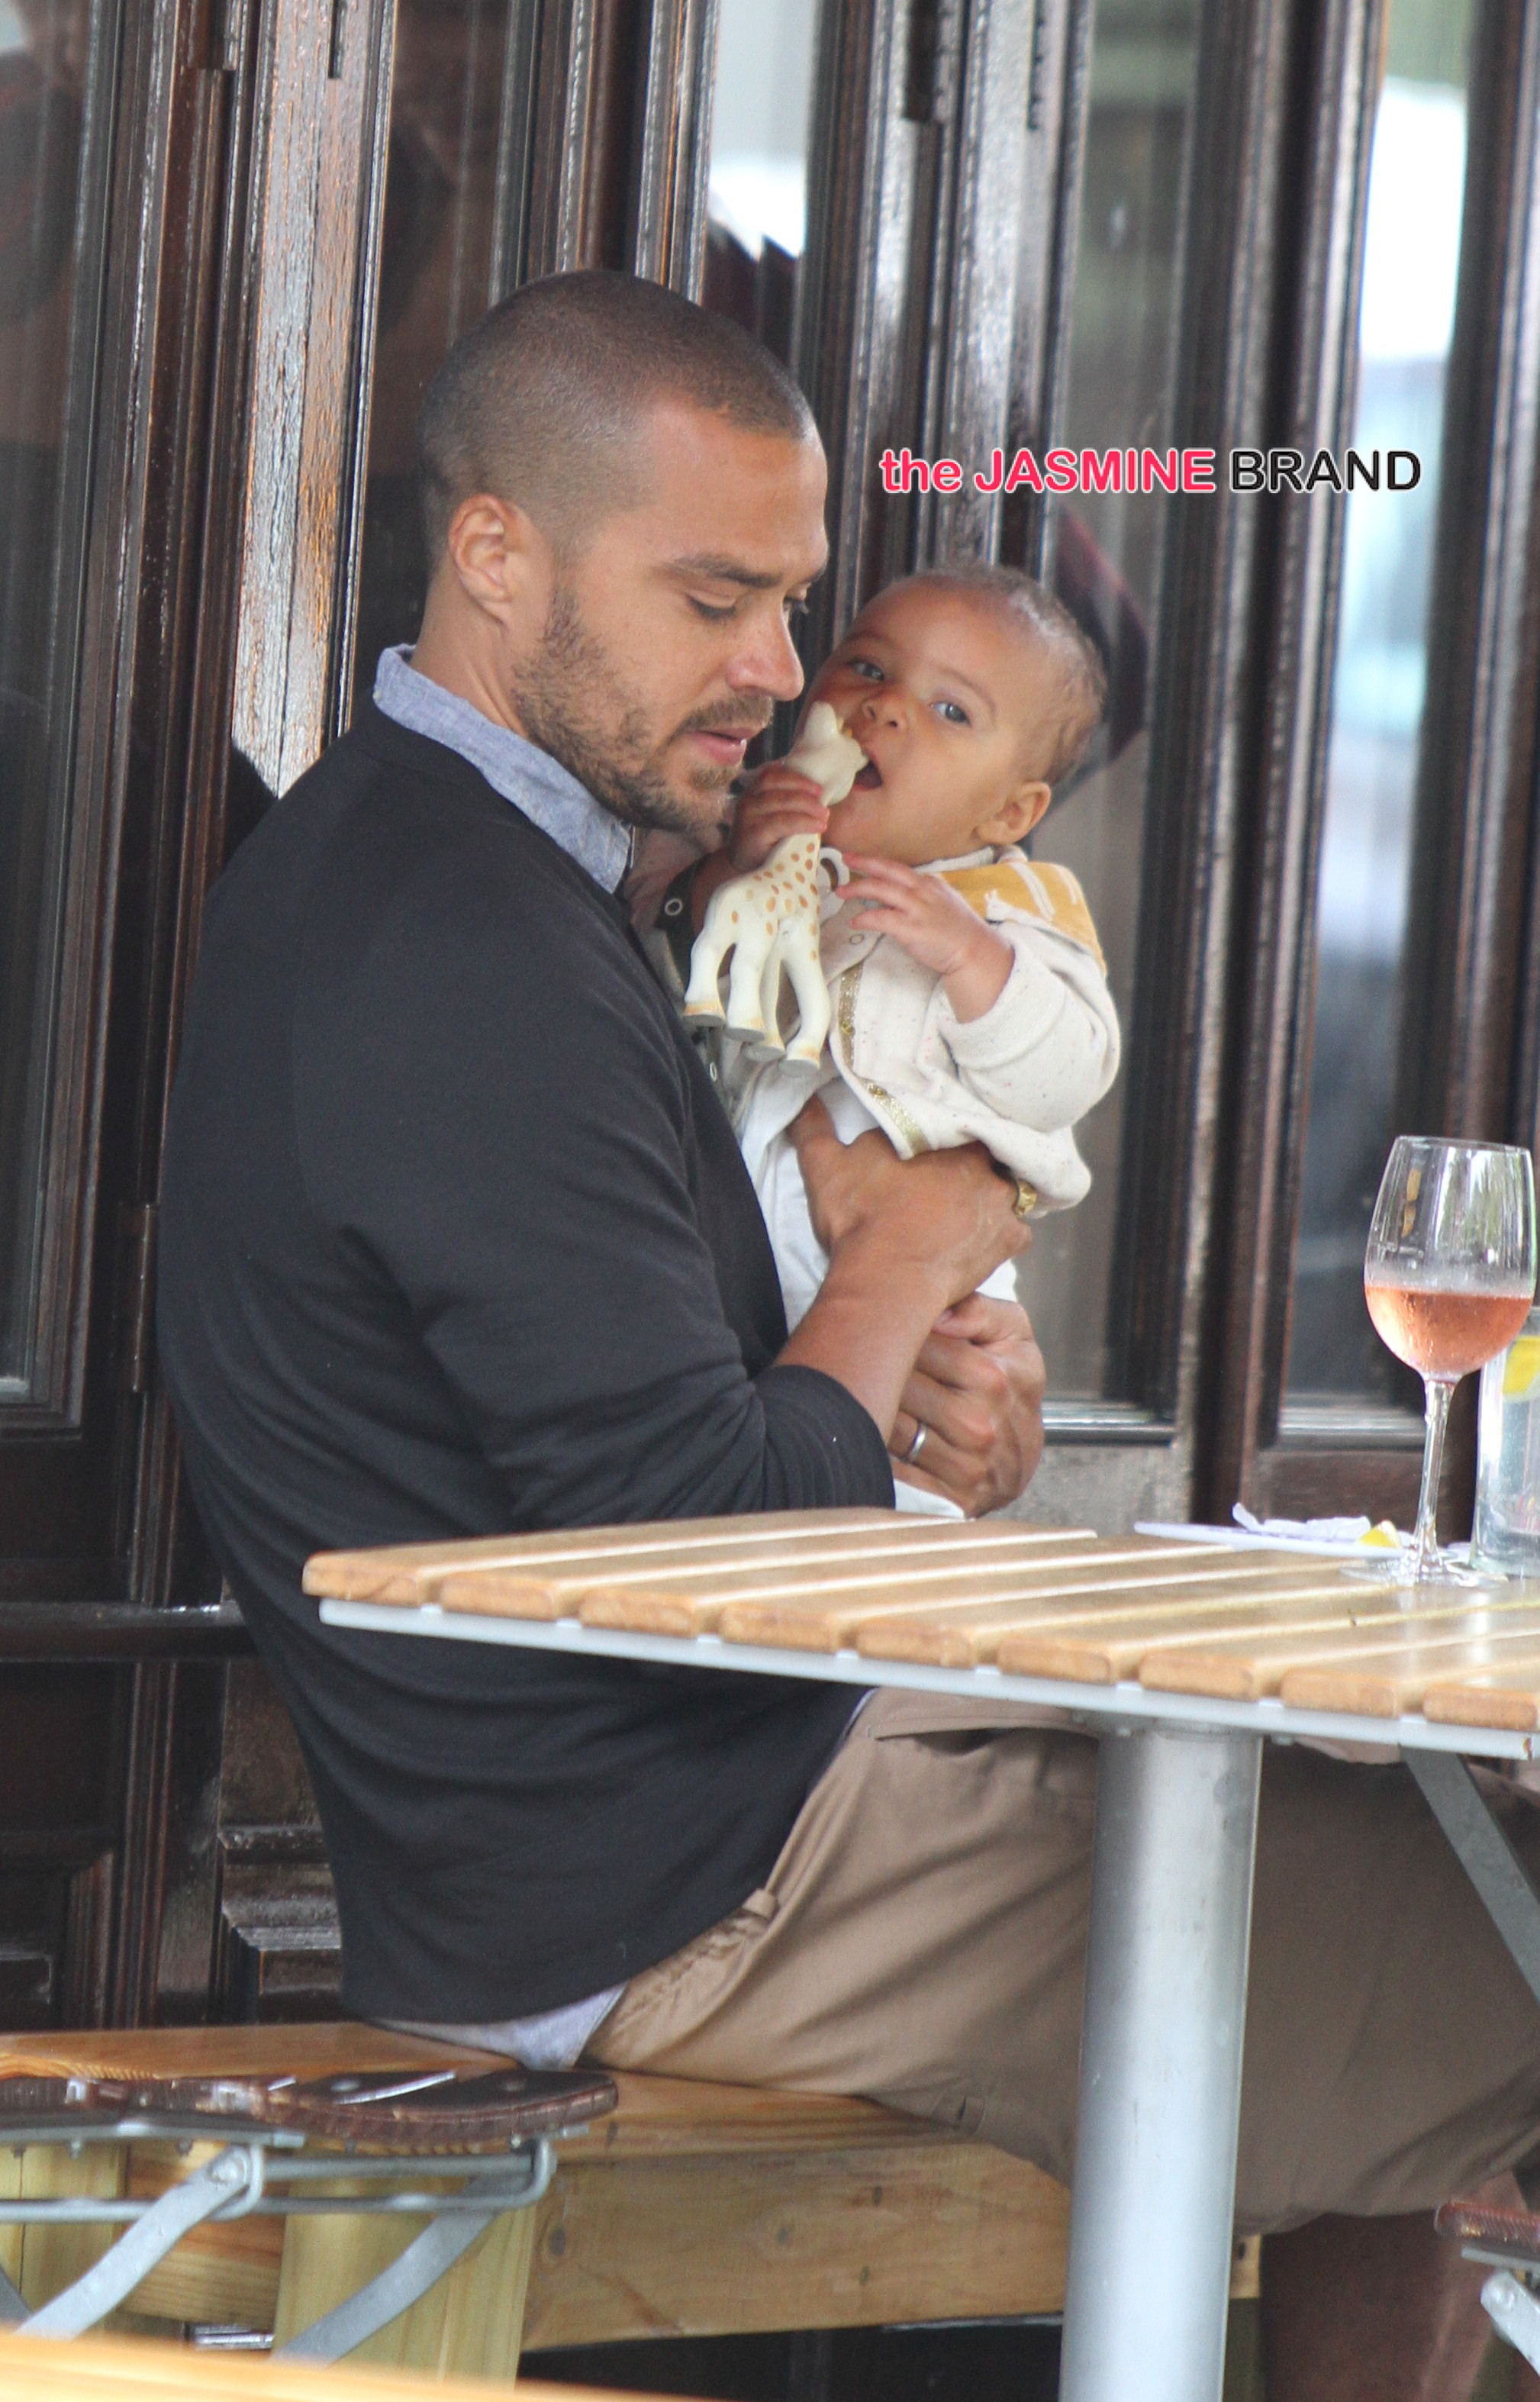 Jesse Williams and his wife out and about with their new born daughter in NYC